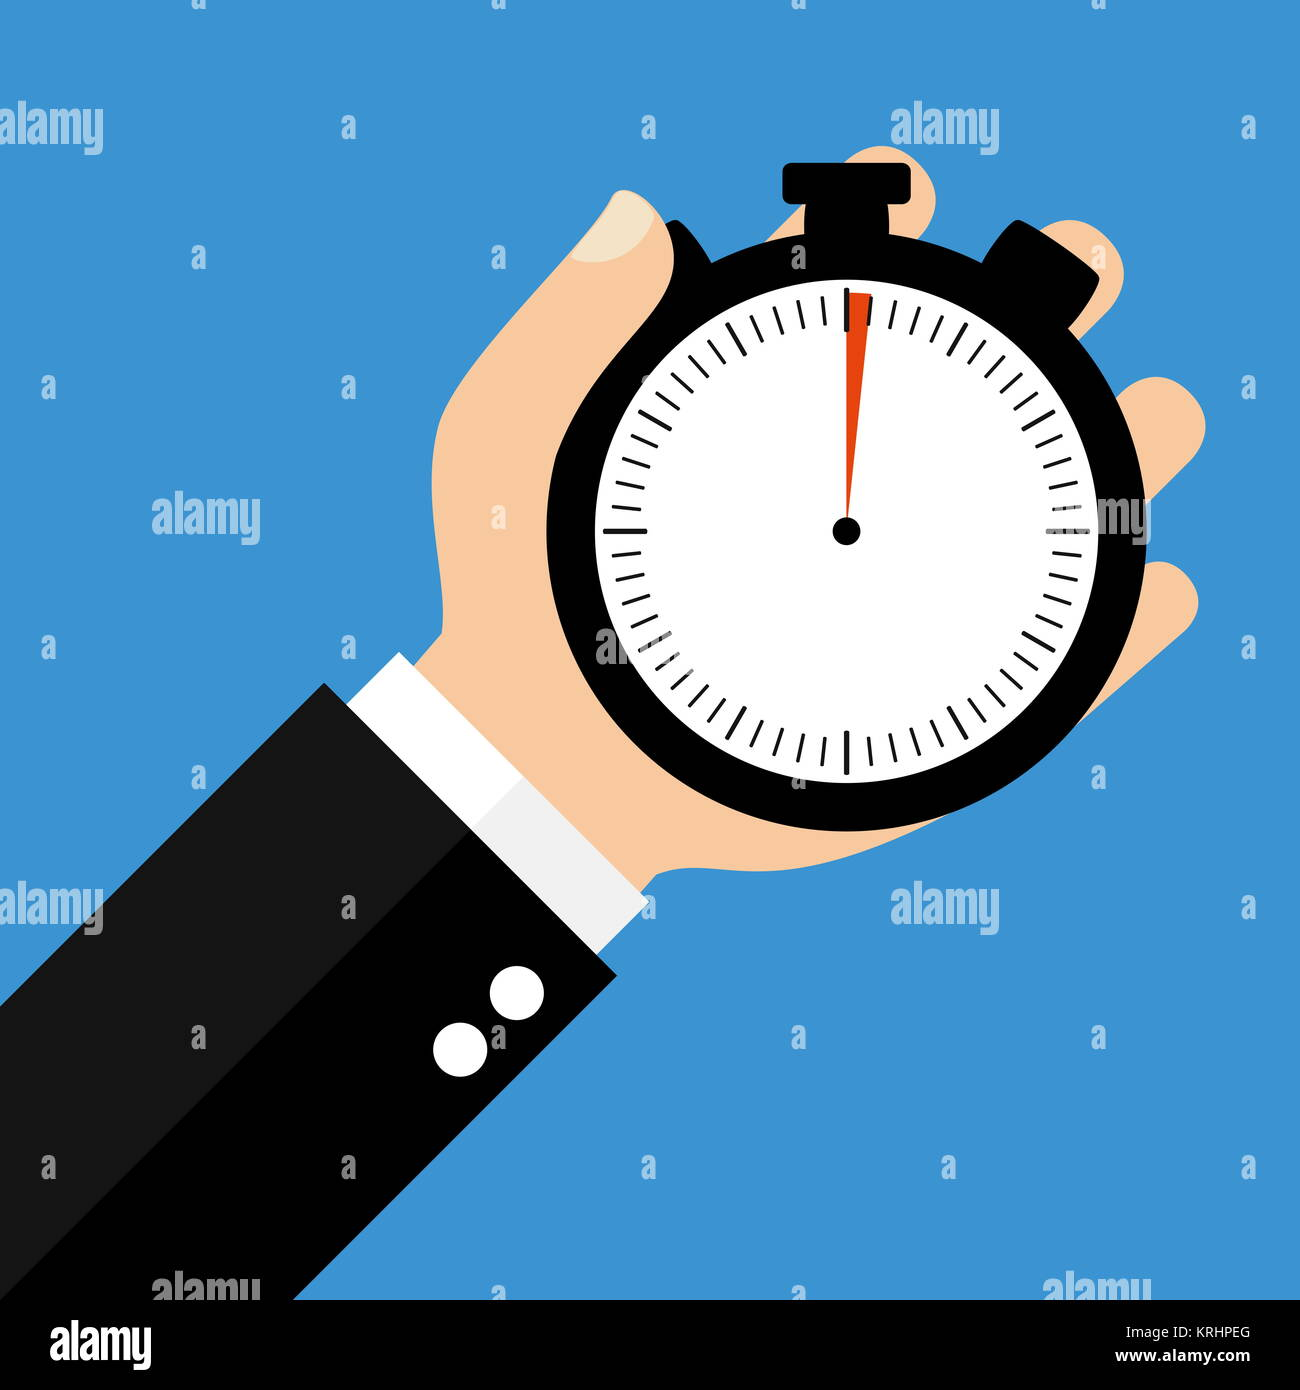 hand with stopwatch 1 second or 1 minute stock photo 169421240 alamy